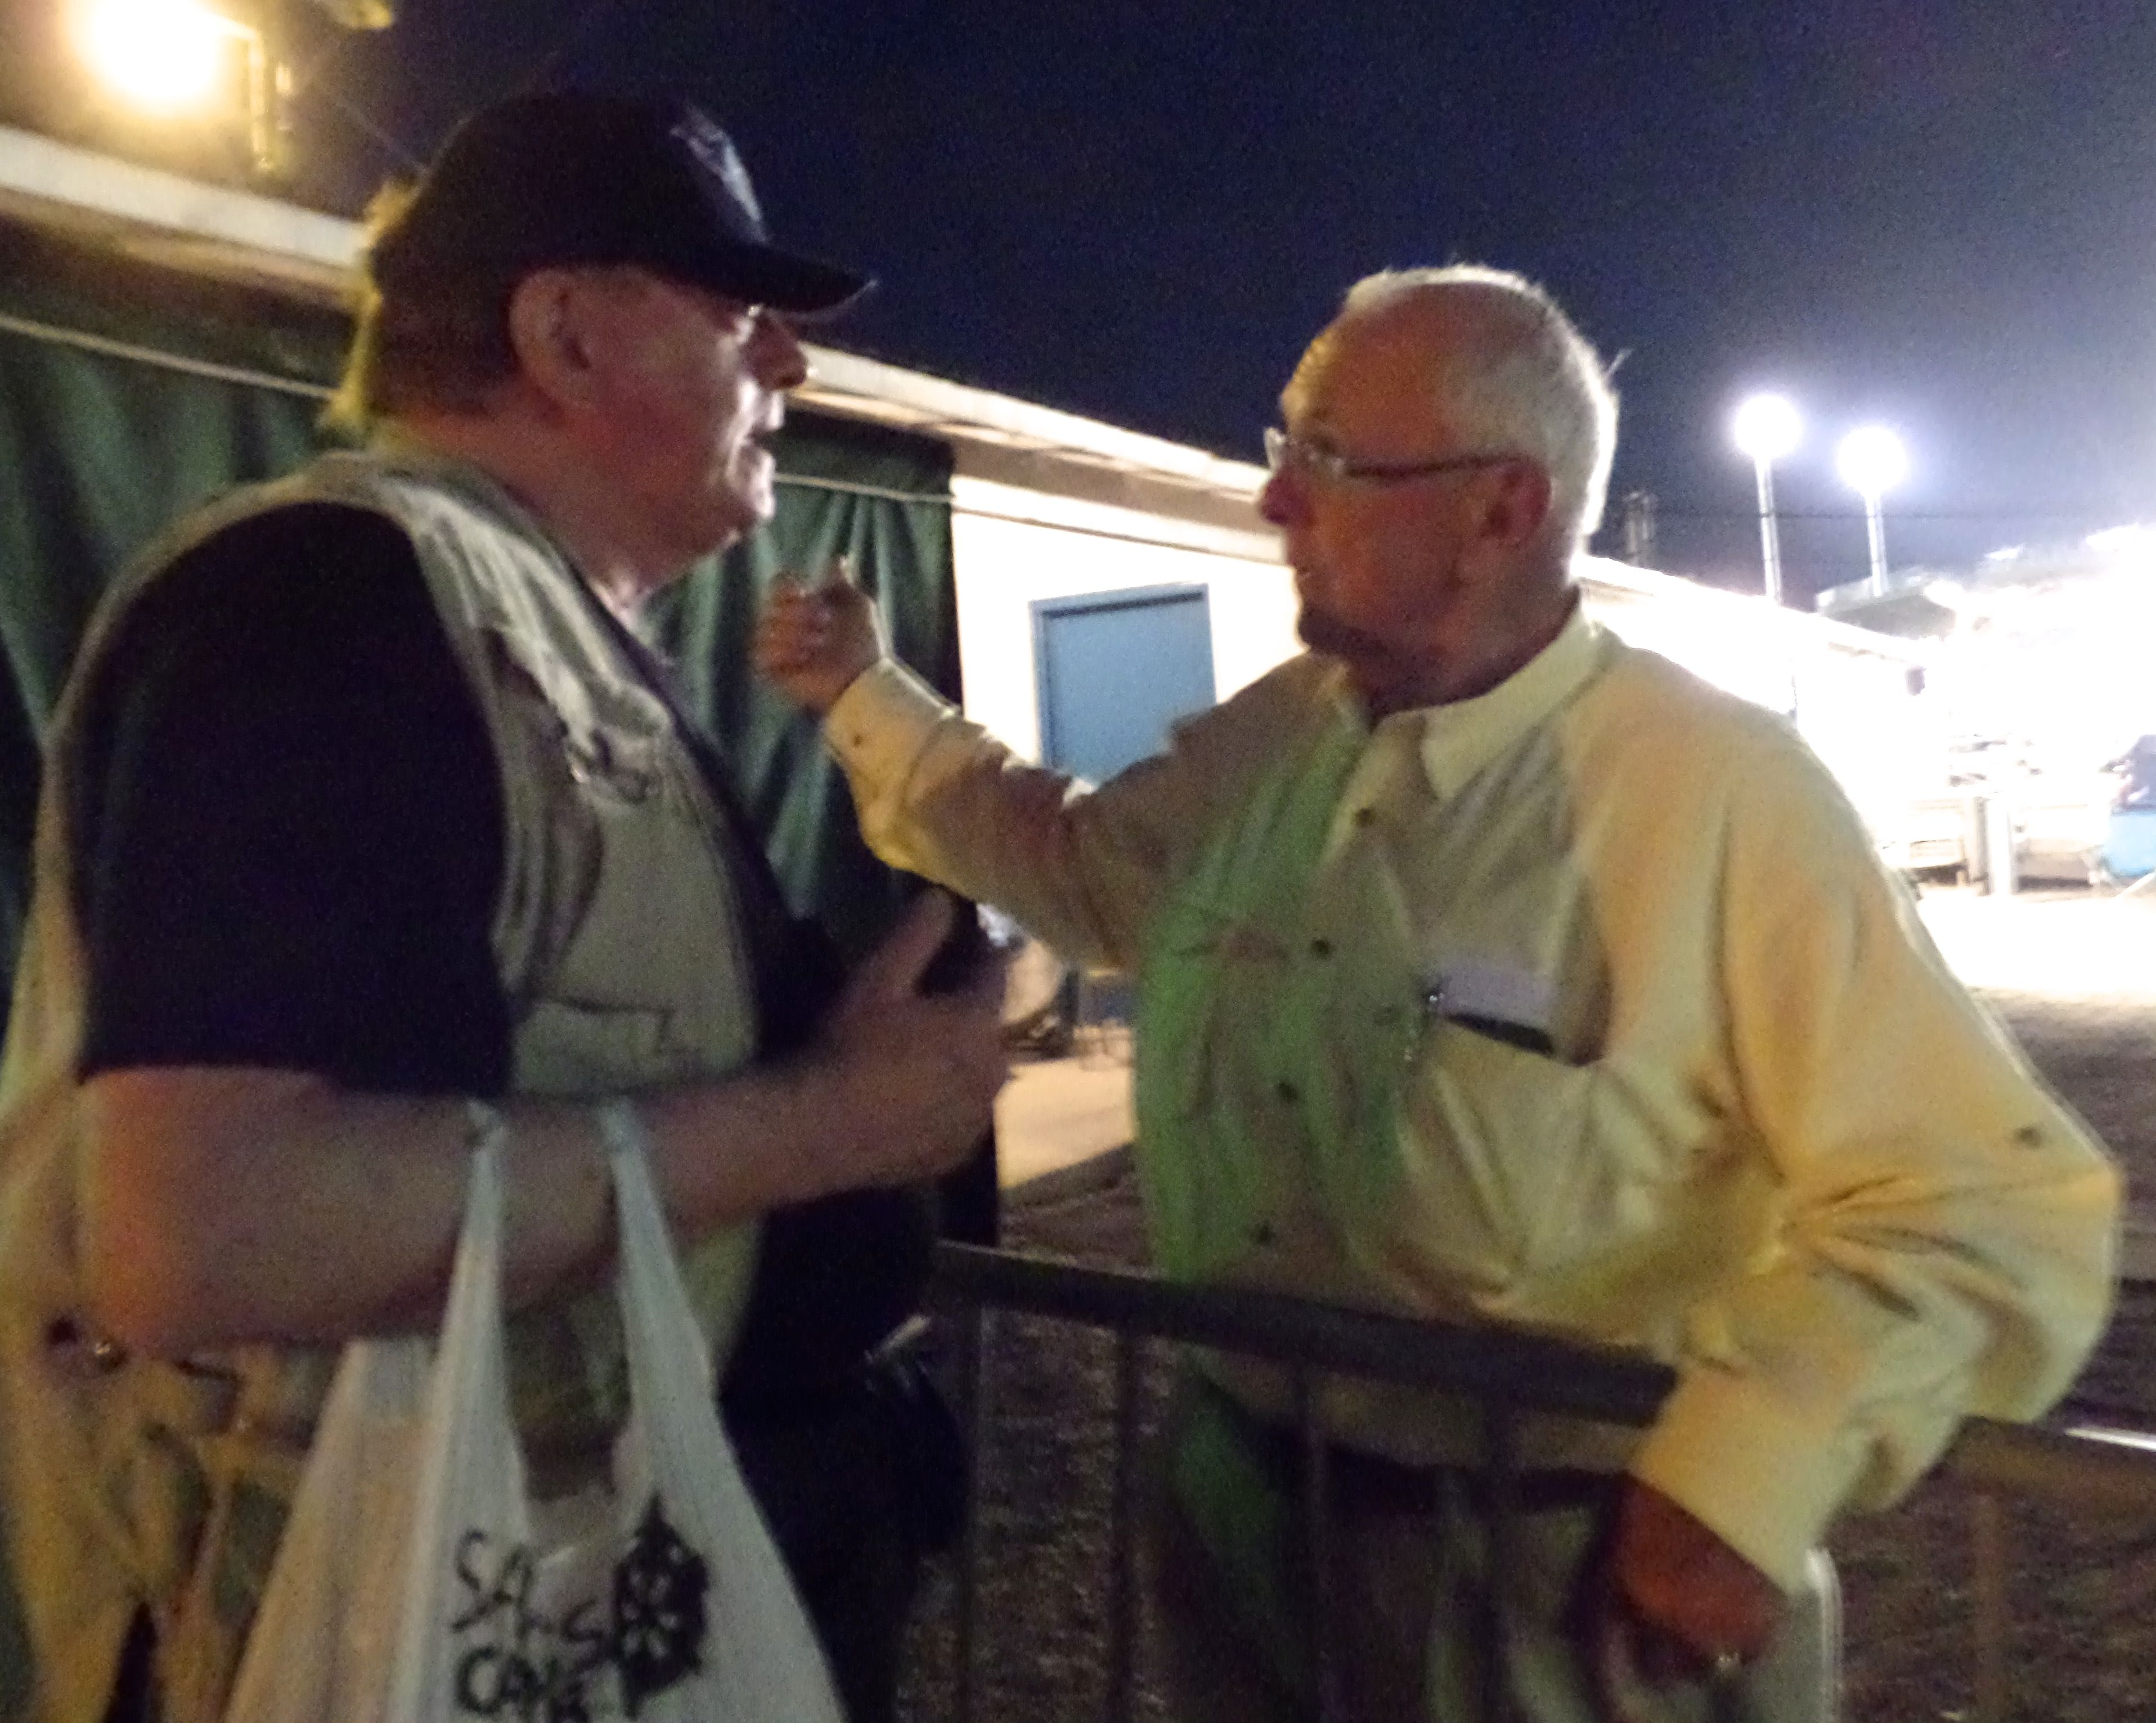 CCABLAC Animal Welfare Advocate AND 'VAC' SPOKESPERSON Mr. Tom Blankenship COMPARE NOTES ON AUG. 29, 2014